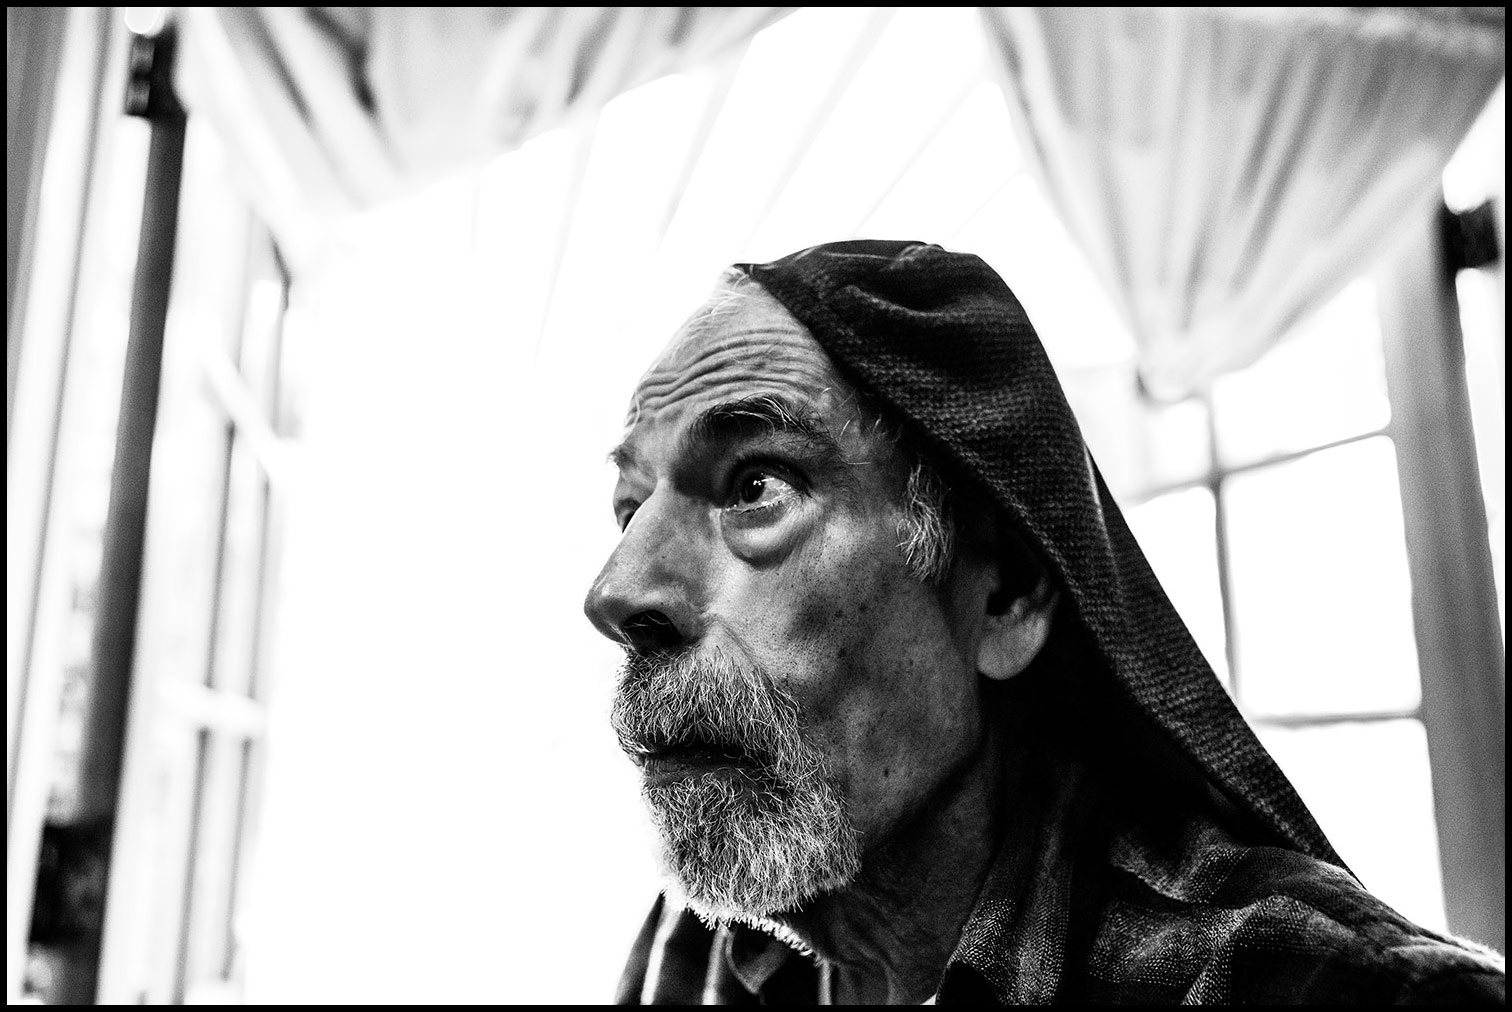 November 1st, 2017: Papa sits next to the french doors leading to the backyard in his home prior to having a meal. He wears the recliner chair protective arm cover on his head. This is something he would do on occasion. - from  Personality Crash: Portraits of My Father Who Suffered from Advanced Stages of Parkinson's Disease, Dementia and Sundowner's Syndrome.